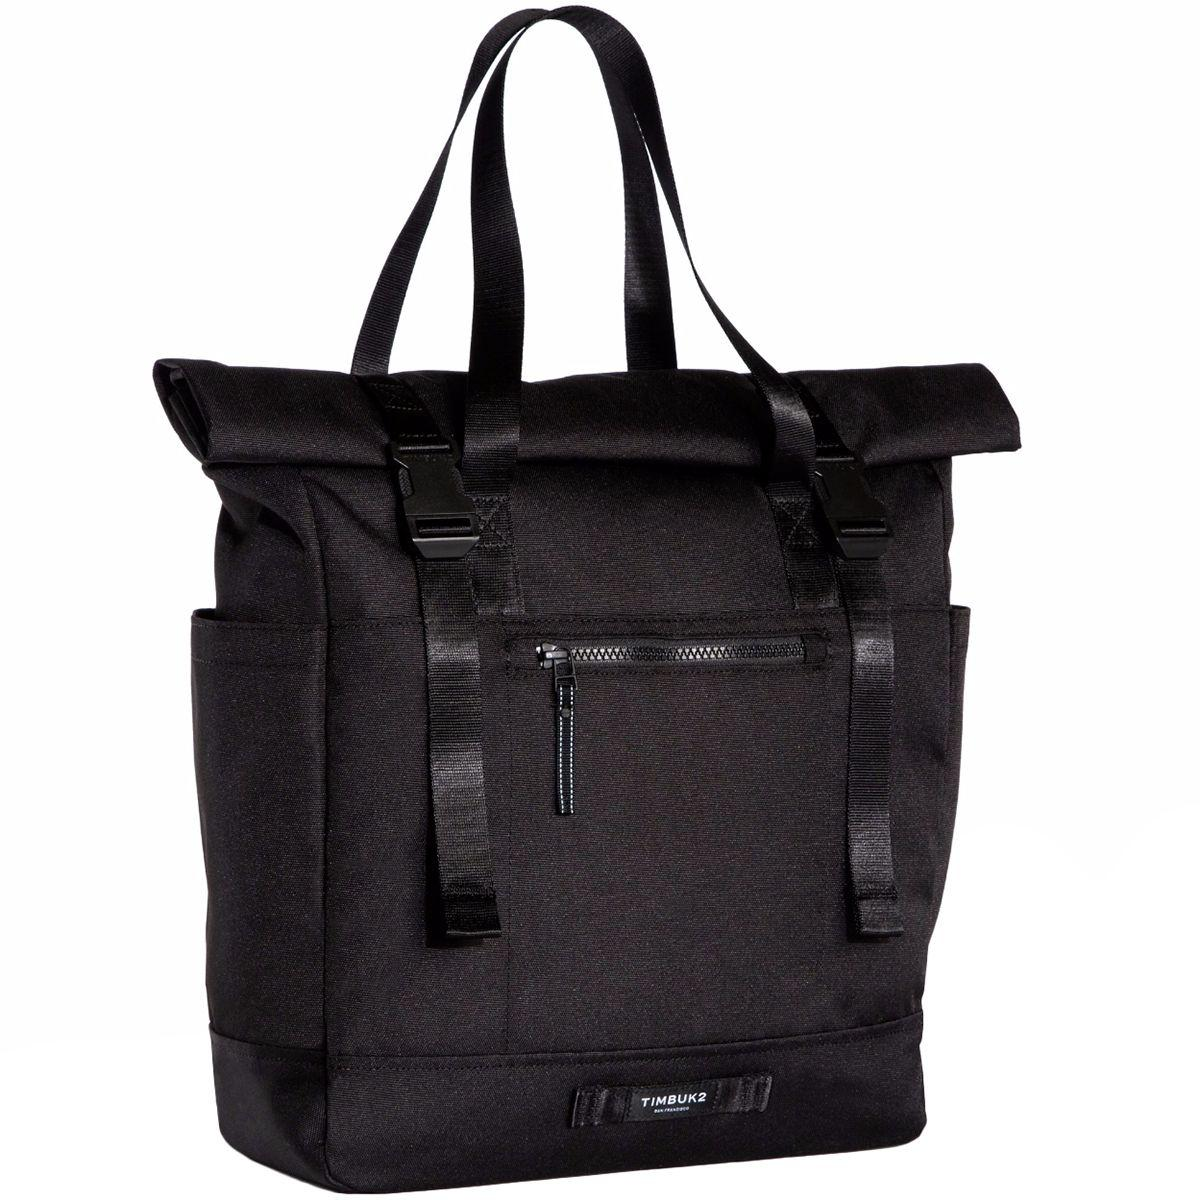 Timbuk2 Forge Tote Backpack Unisex Daily Laptop Shoulder Pack By Ryan&rayla.